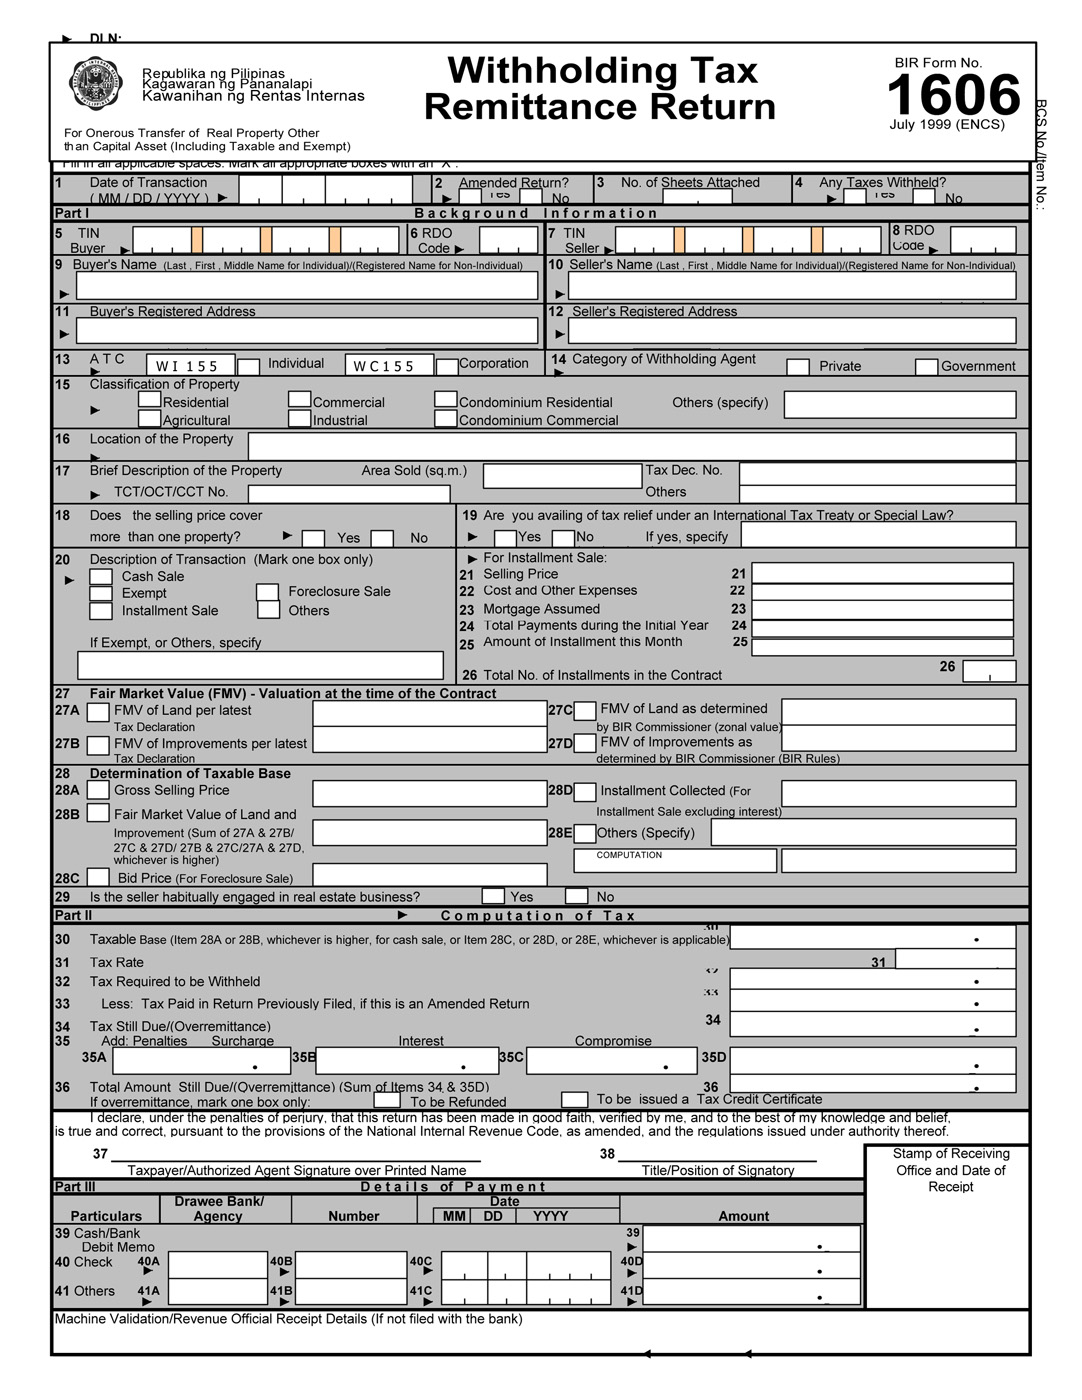 axis bank outward remittance form pdf